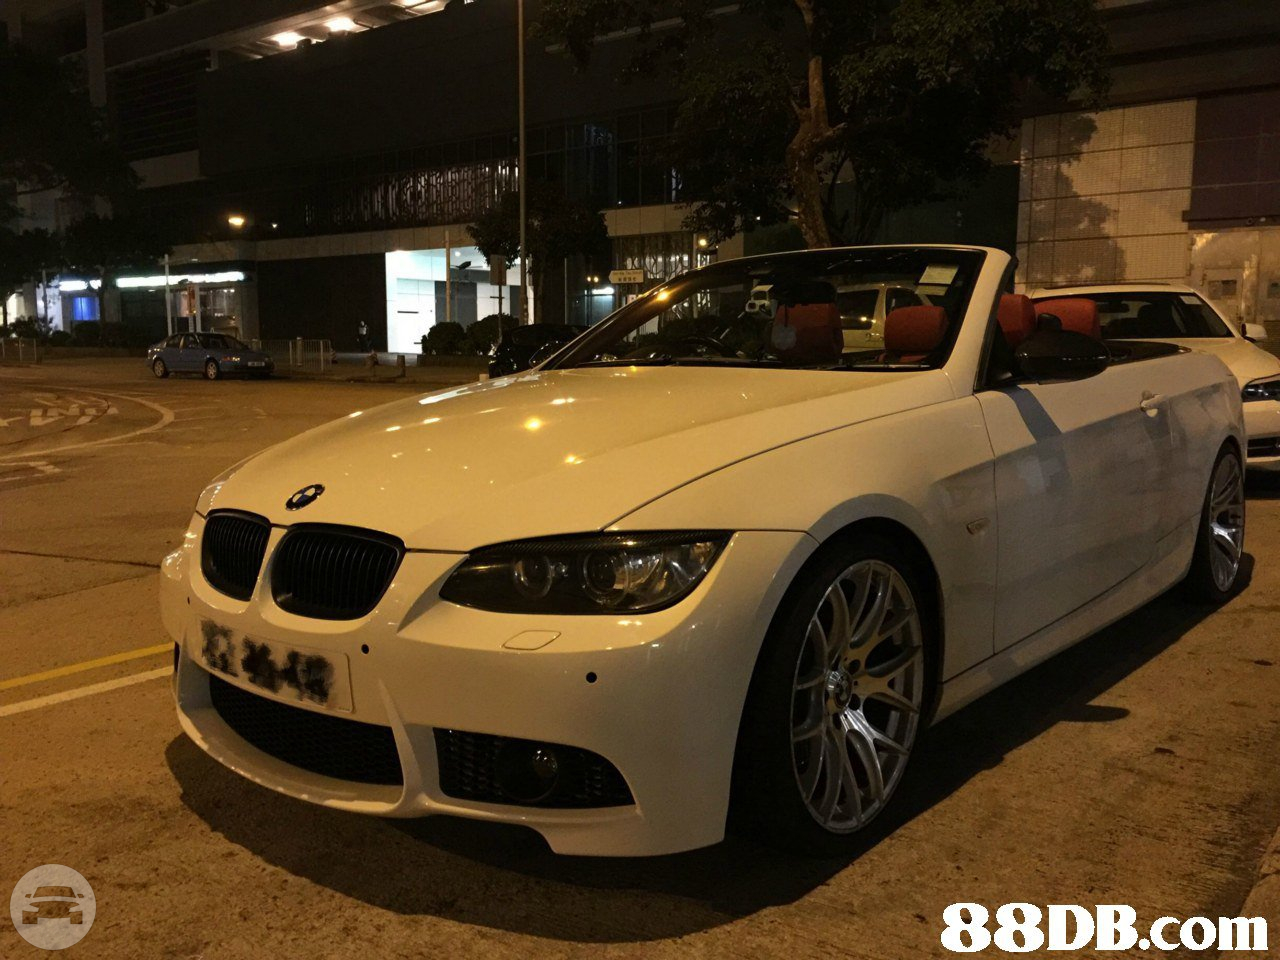 BMW 325i Sedan  / Hong Kong Island, Hong Kong   / Hourly HKD 0.00